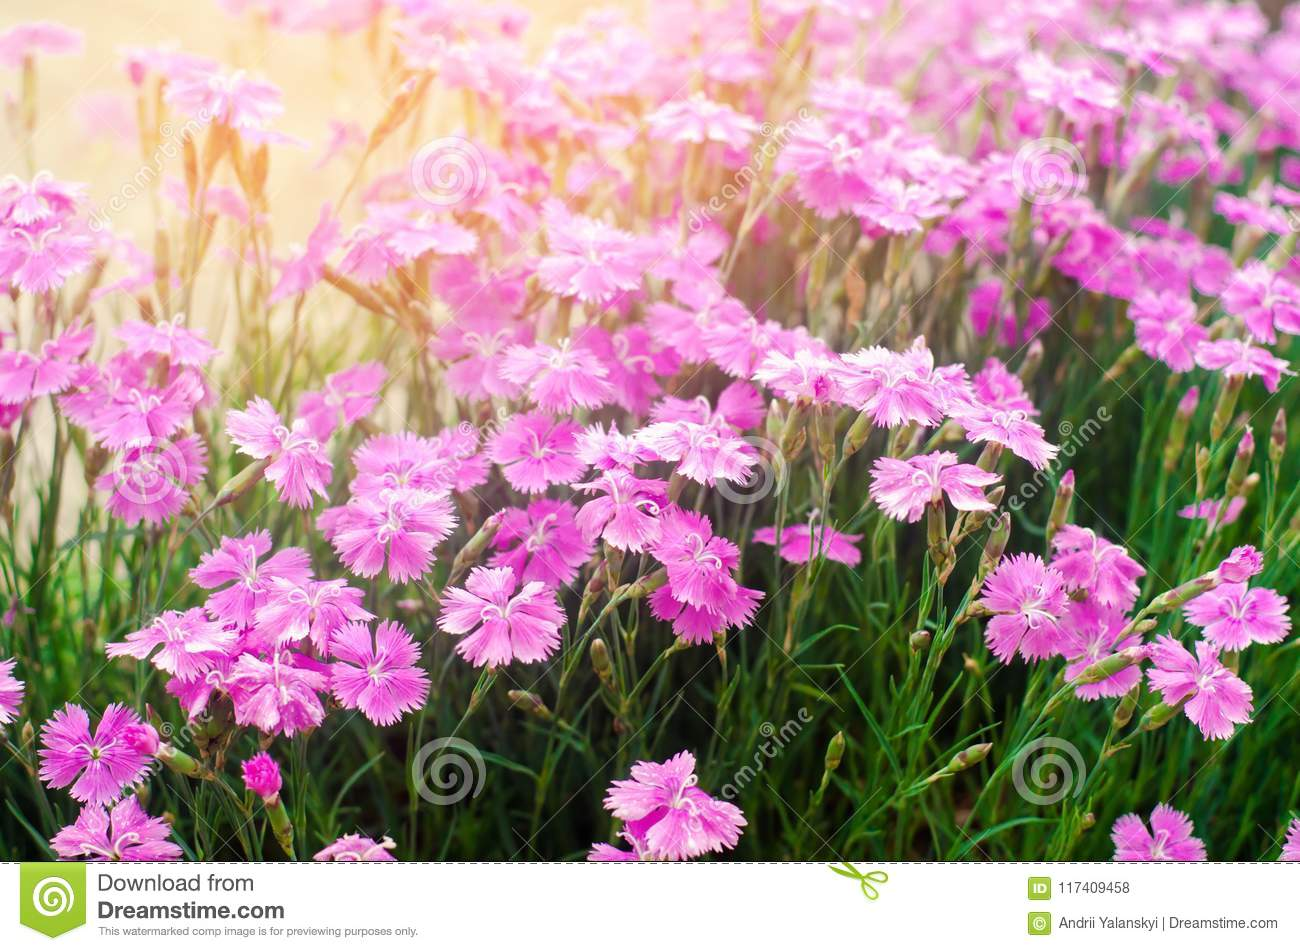 Beautiful Spring Flowers Rose Maiden Pinks Growing In The Garden On A Sunny Day Background For Design Natural Wallpaper Stock Photo Image Of Bloom Beauty 117409458